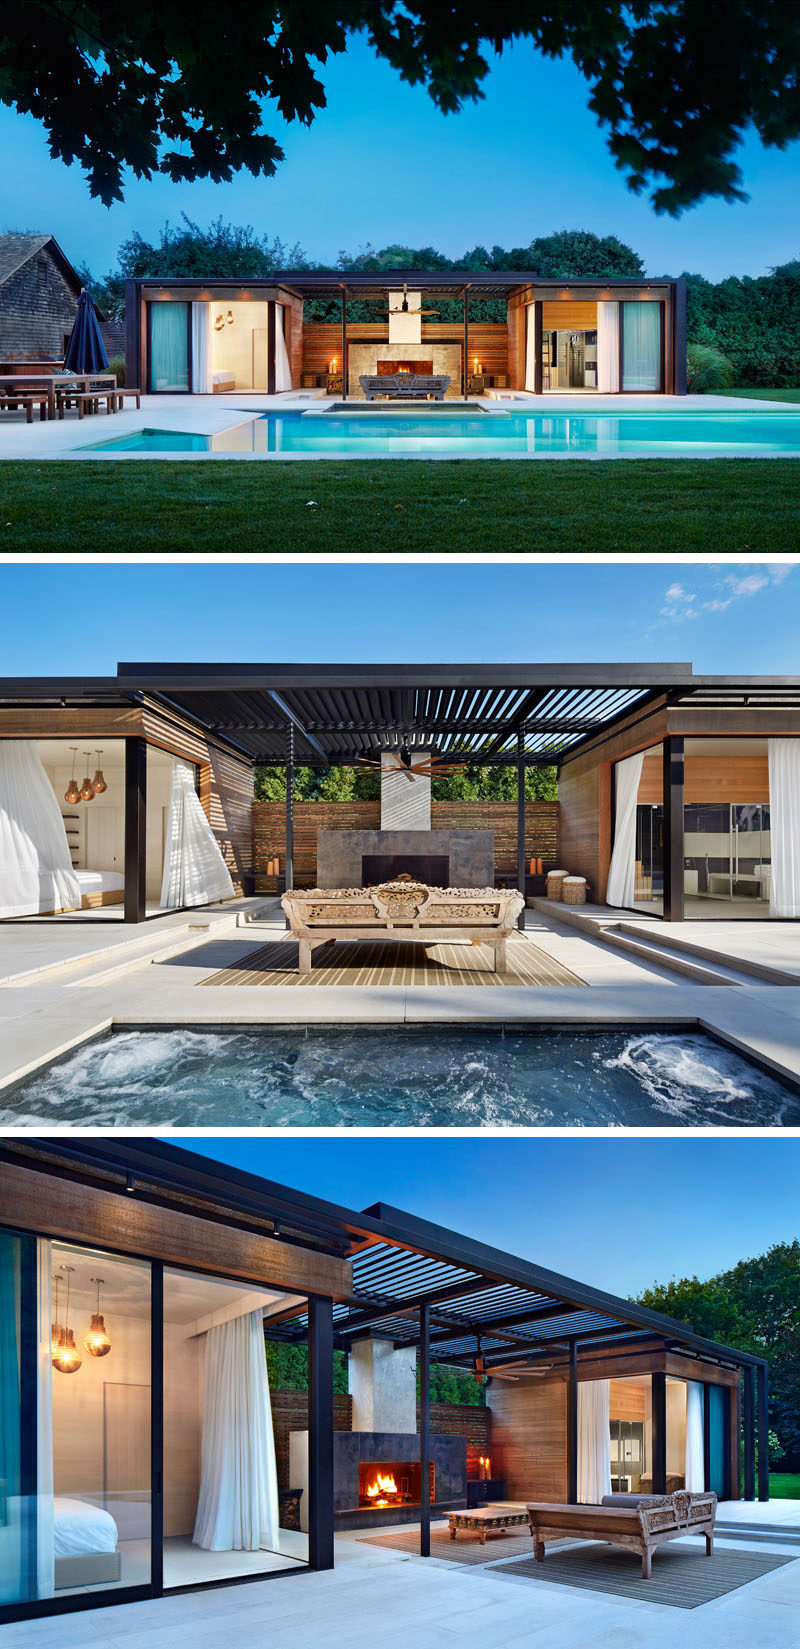 11 Backyards Designed For